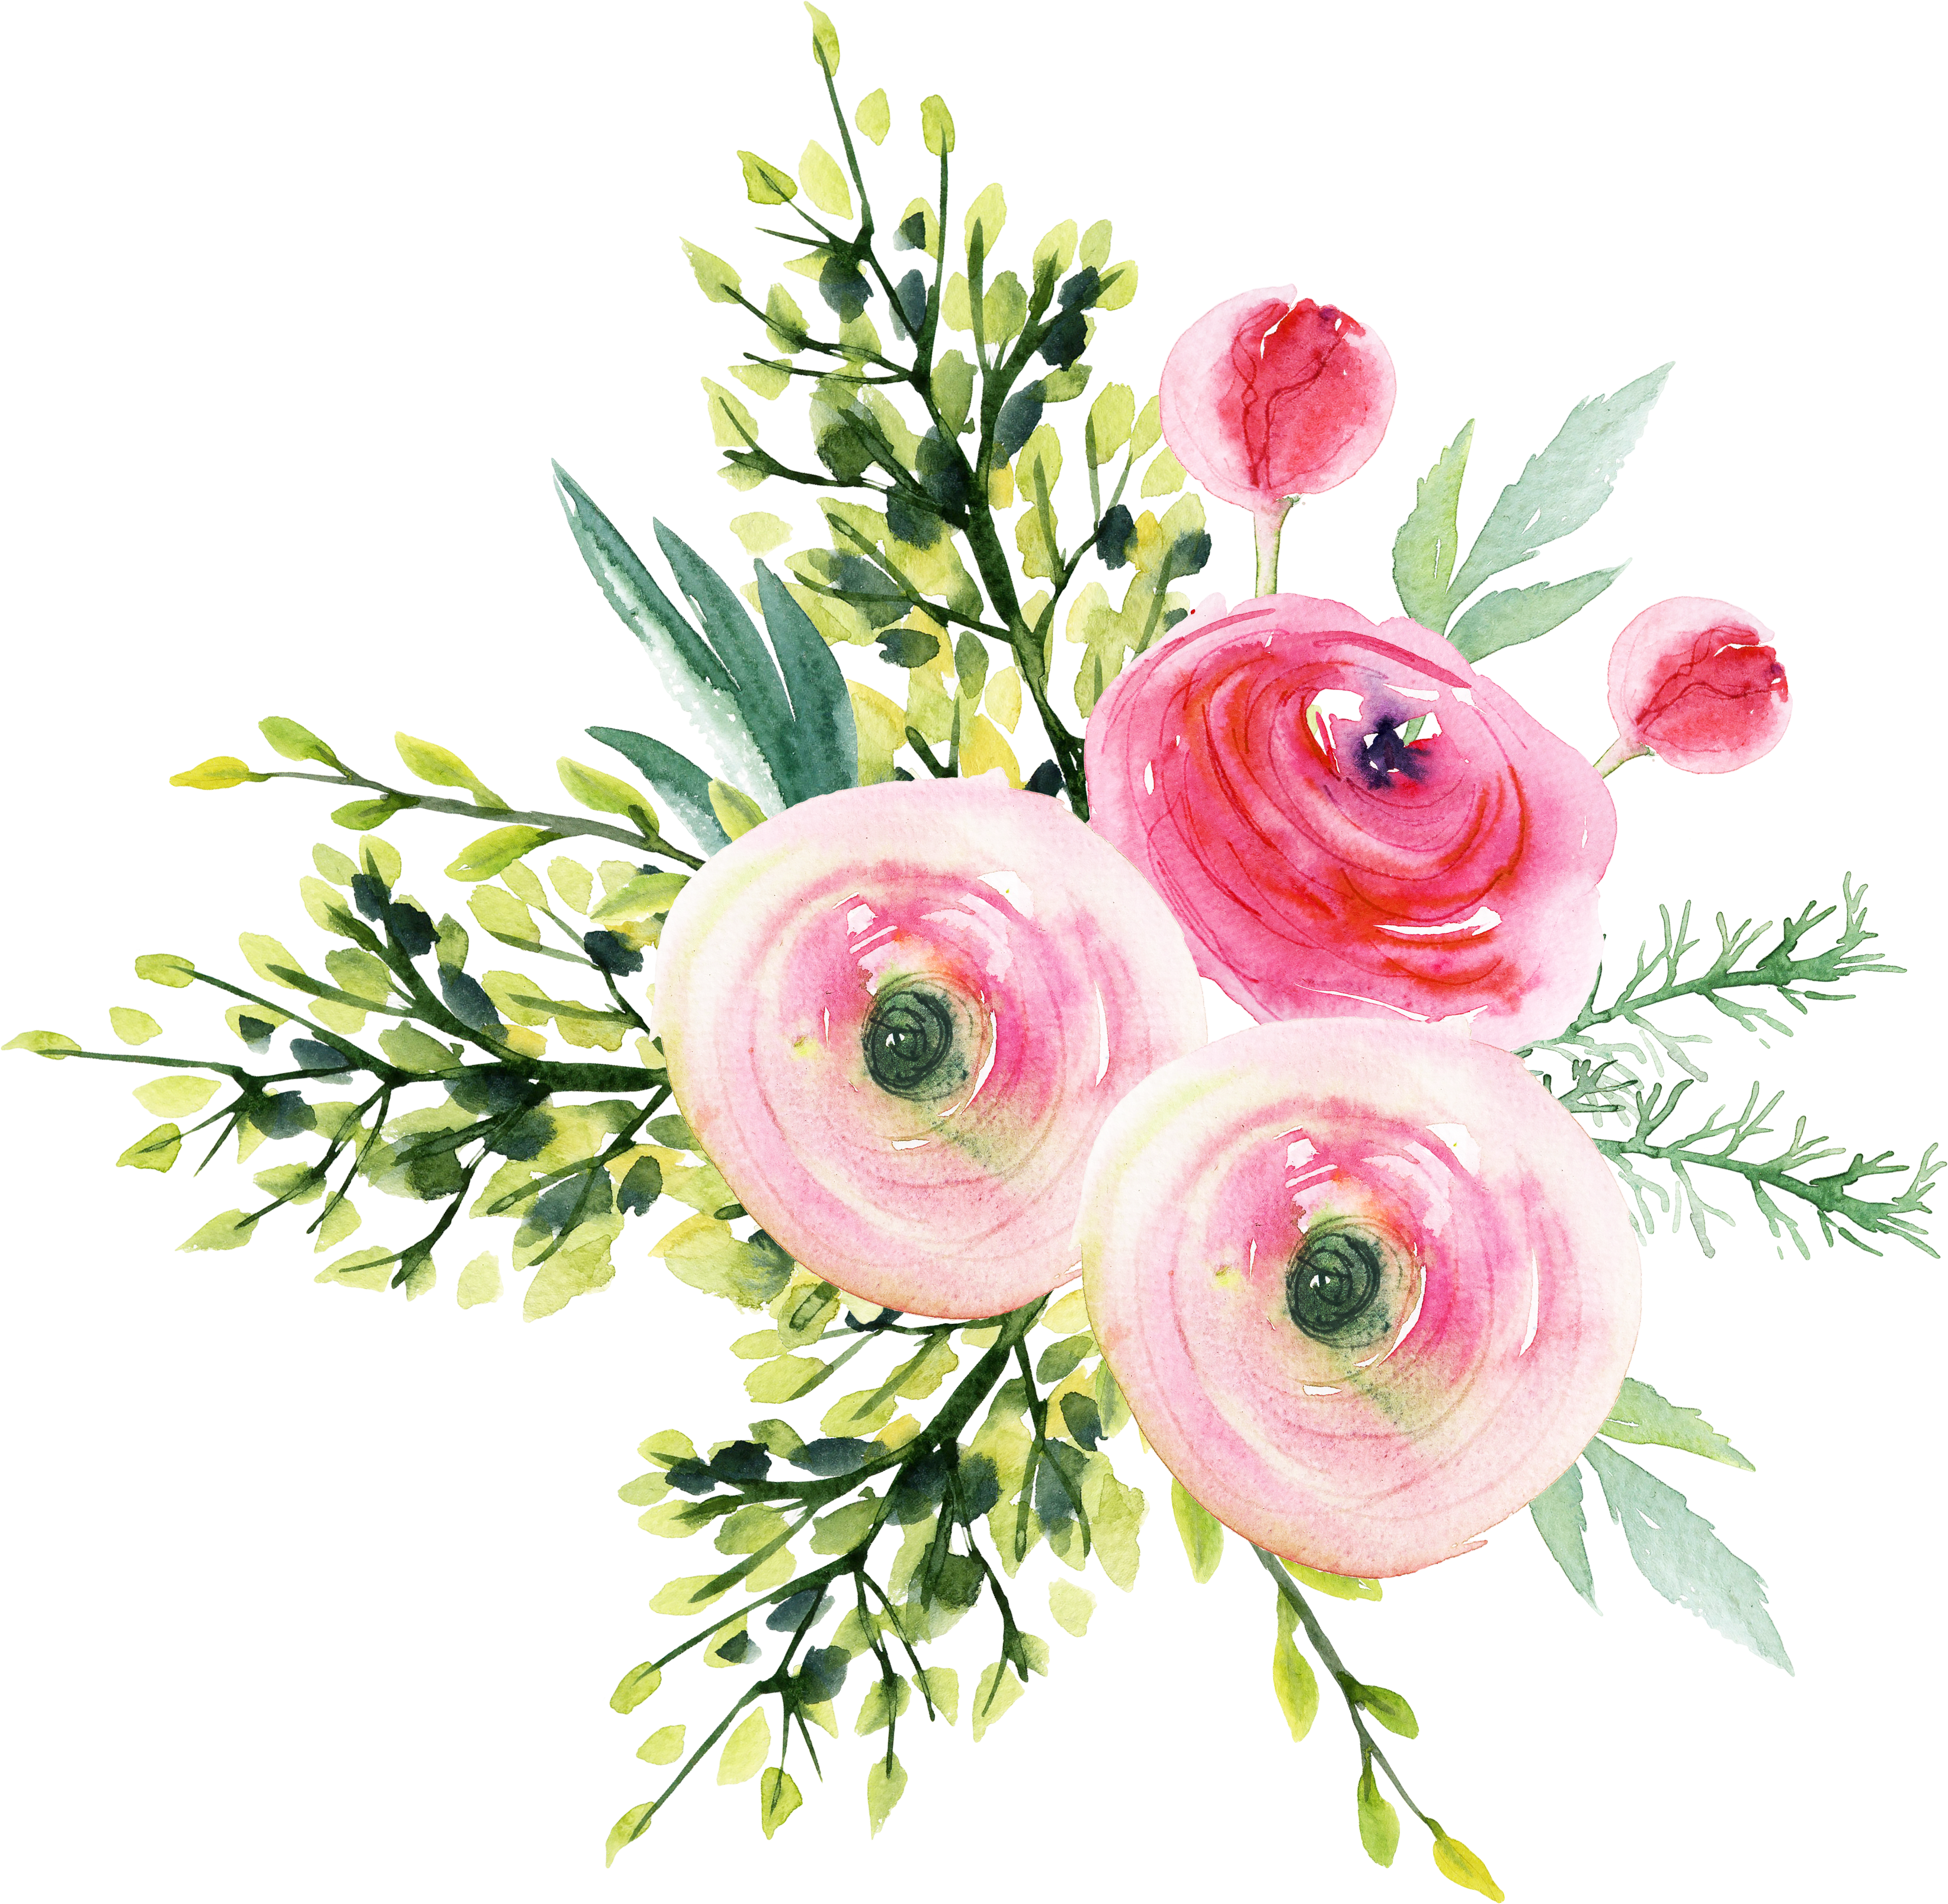 Aesthetic flower png. Garden roses bouquet refined